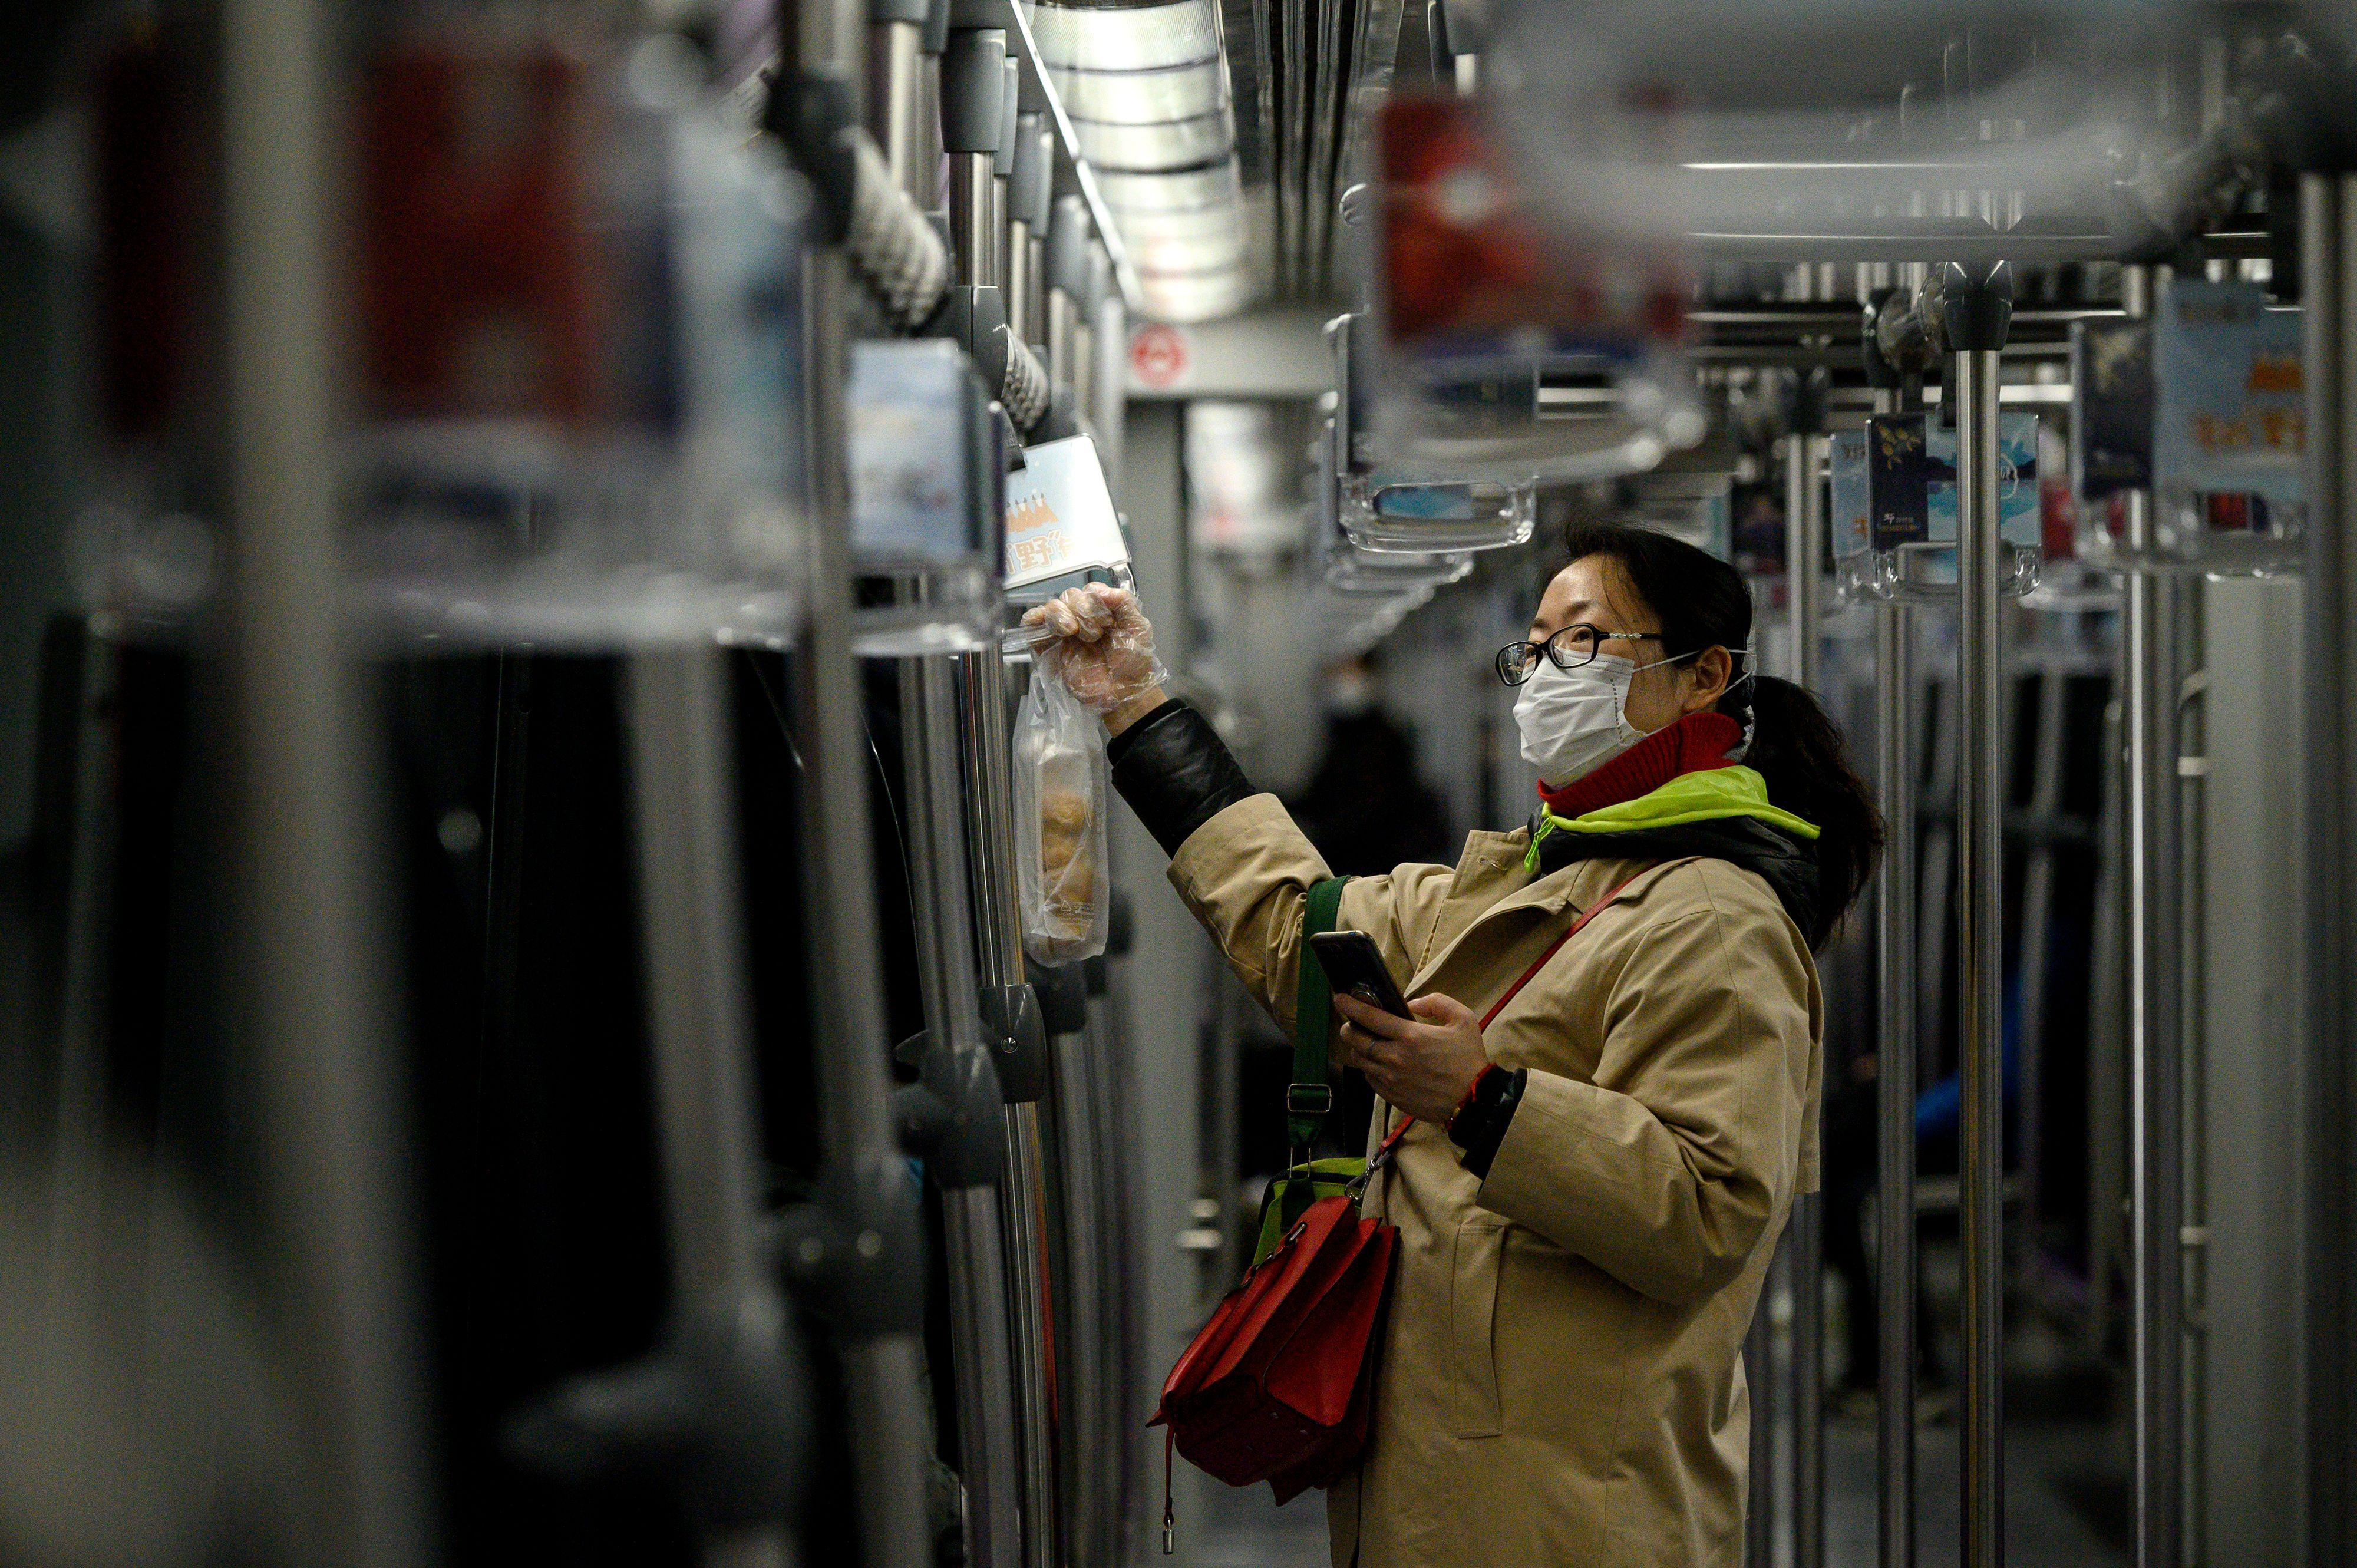 A woman wearing a mask standing on an empty train in Shanghai during the coronavirus outbreak.